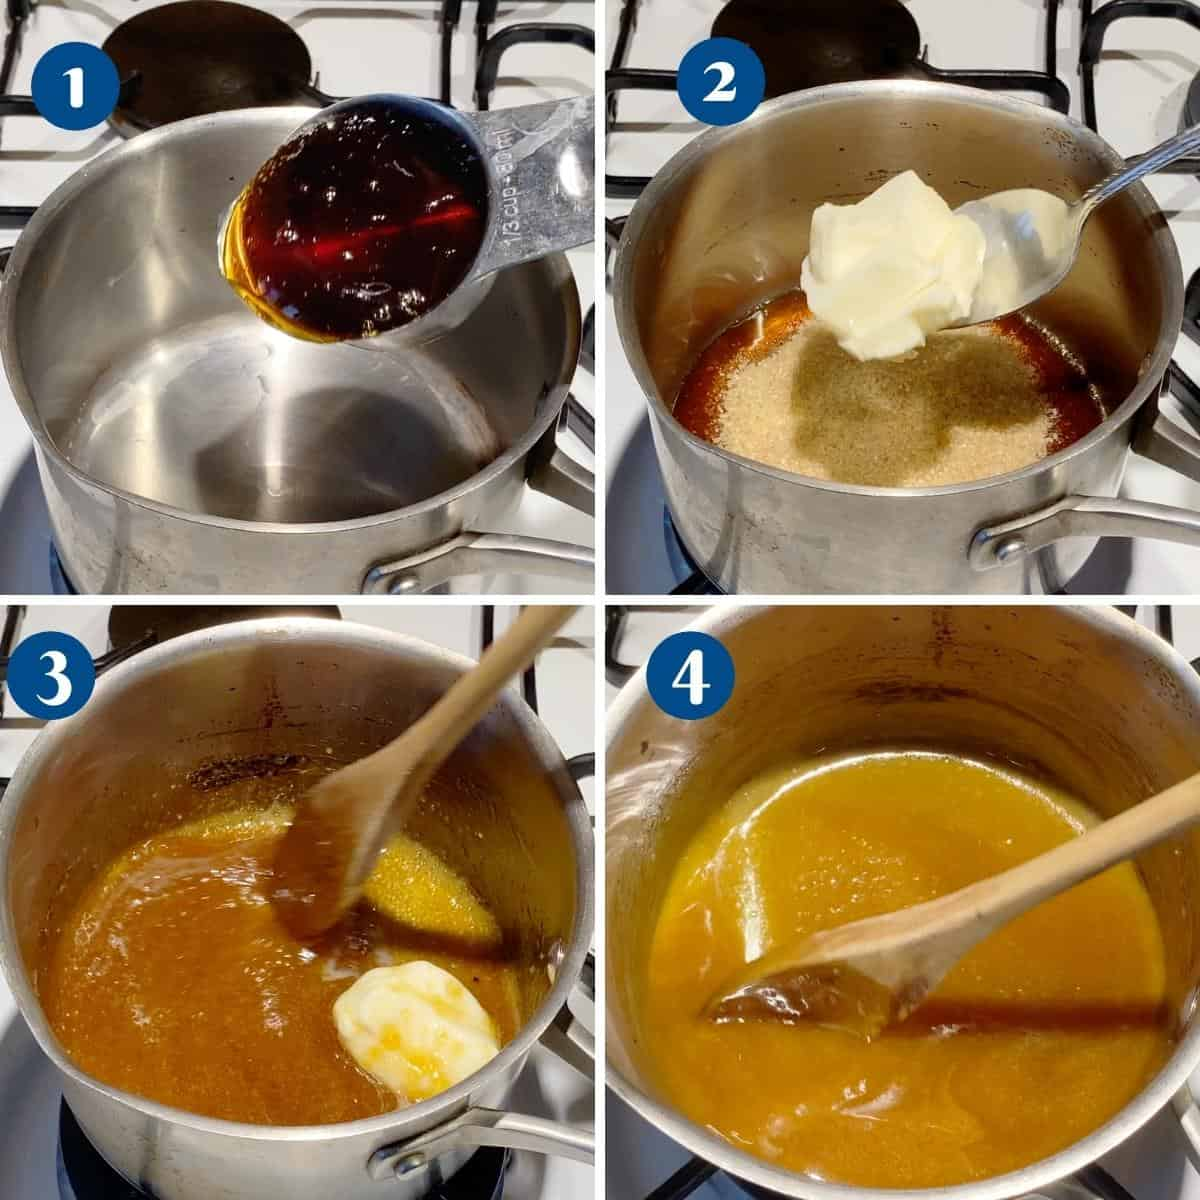 Progress pictures collage making caramel with golden syrup.